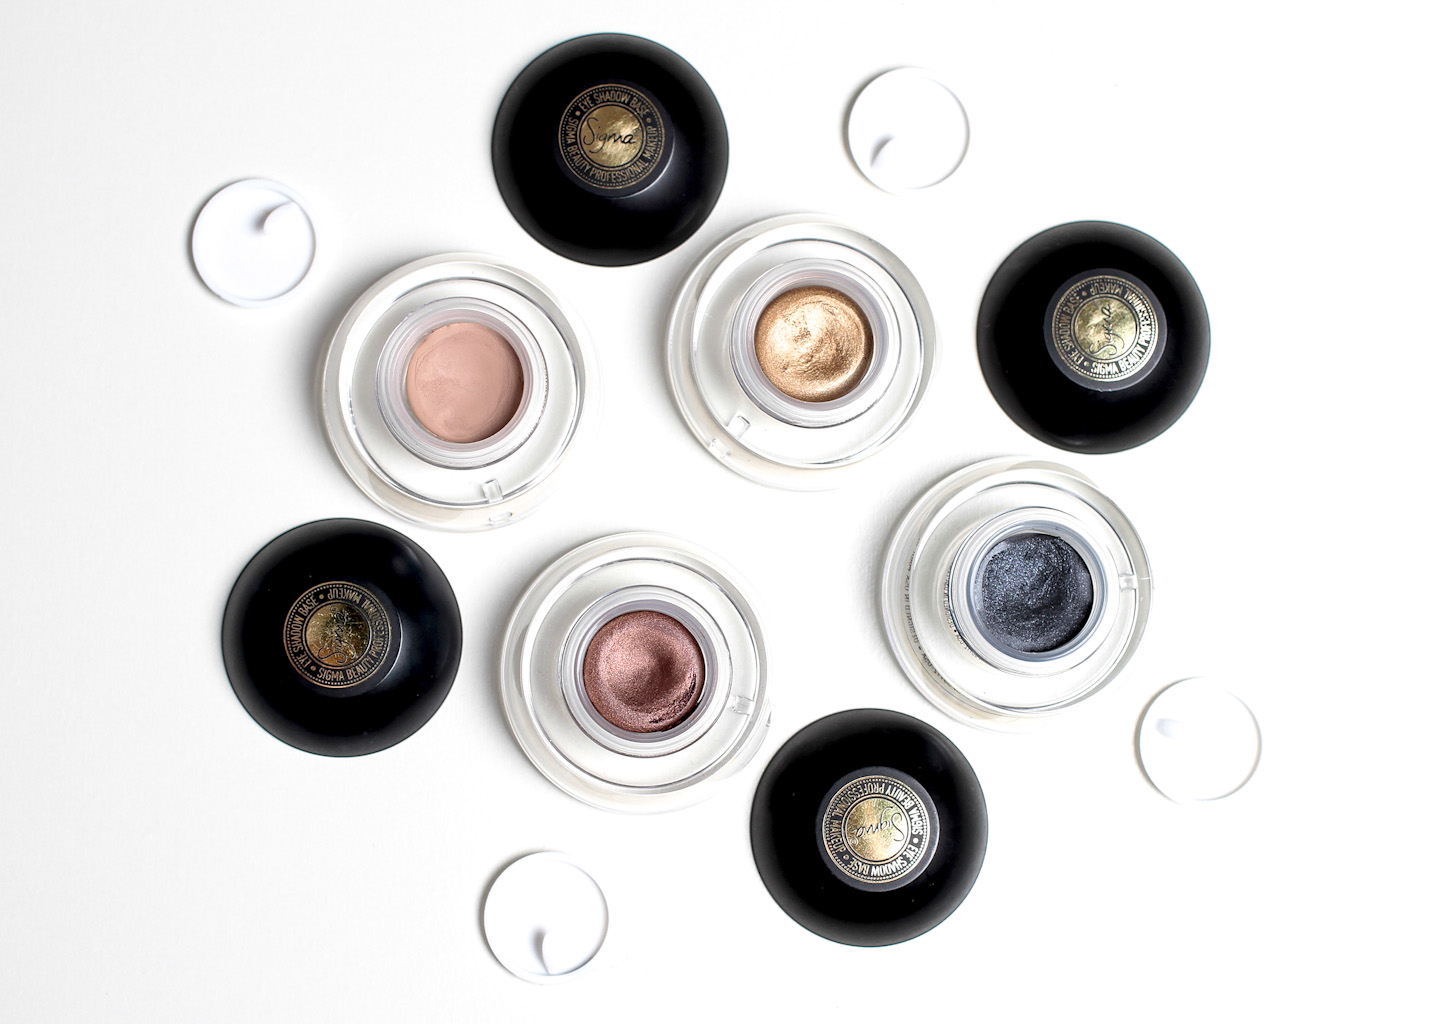 sigma eye shadow bases with lids off